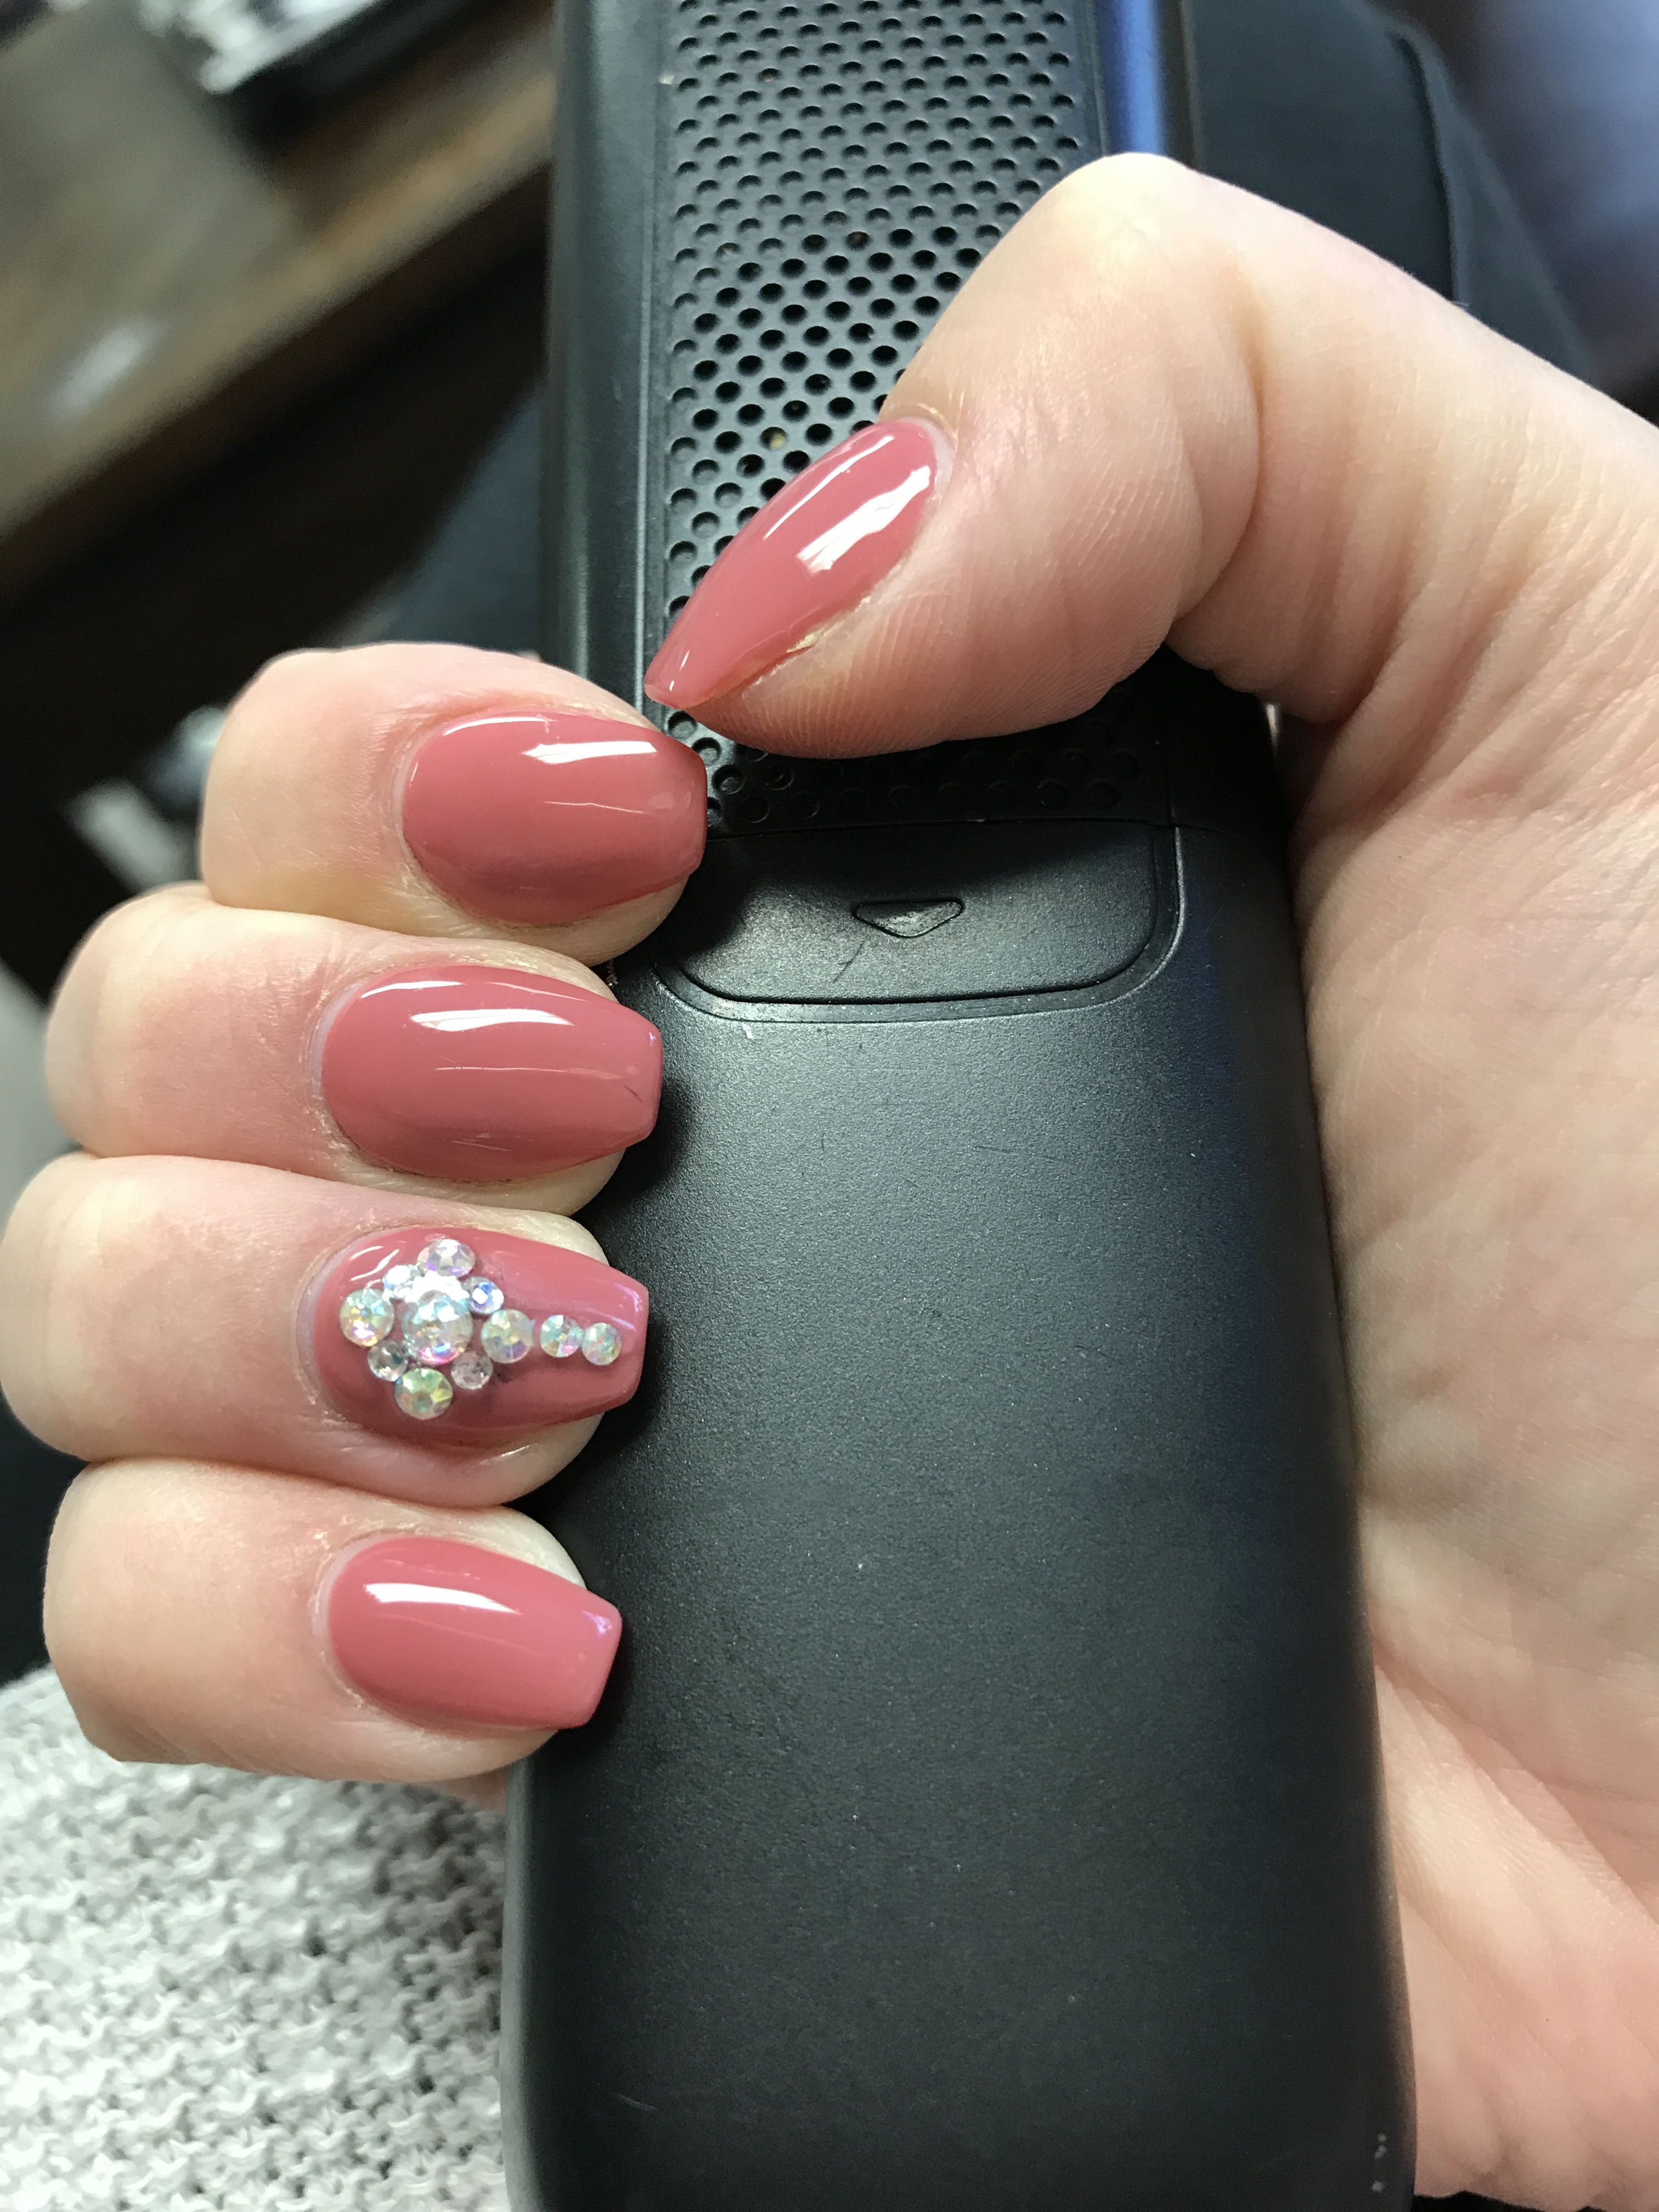 DND 490 Redwood City Nude color nails, gel manicure. Nude and ...